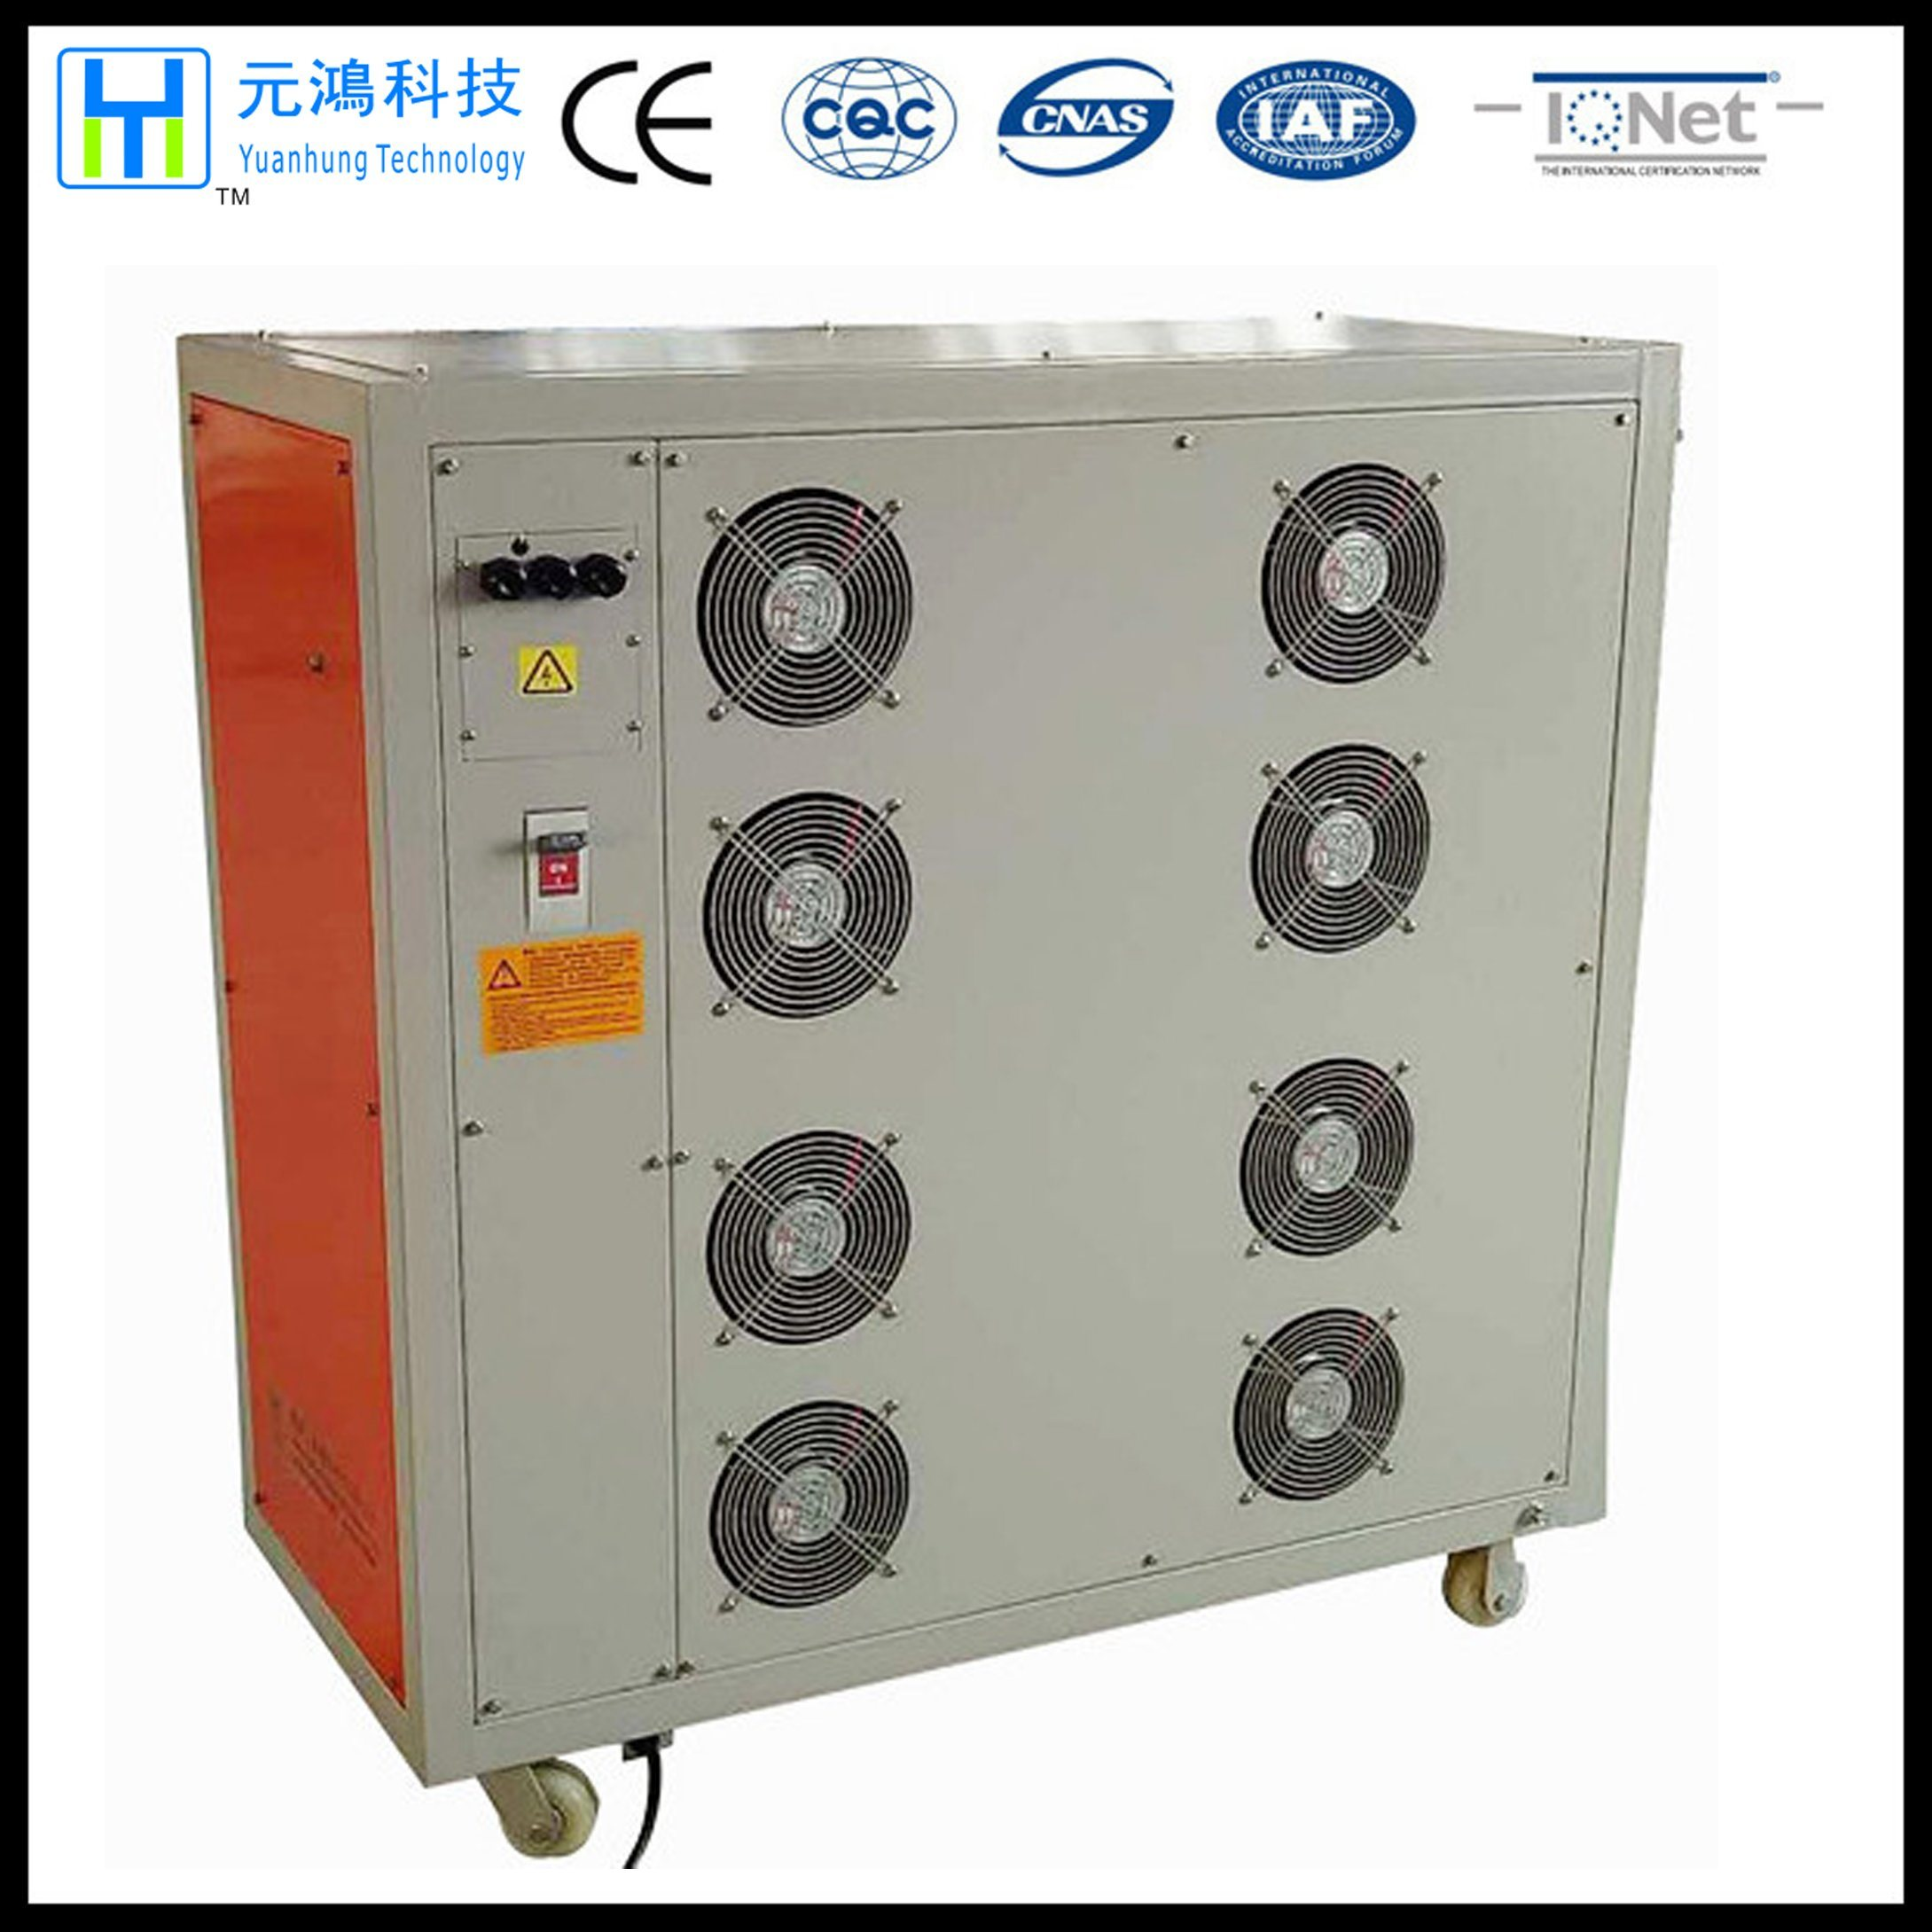 High Power 10000 AMP Rectifier for Plating Copper, Nickel, Zinc, Tin